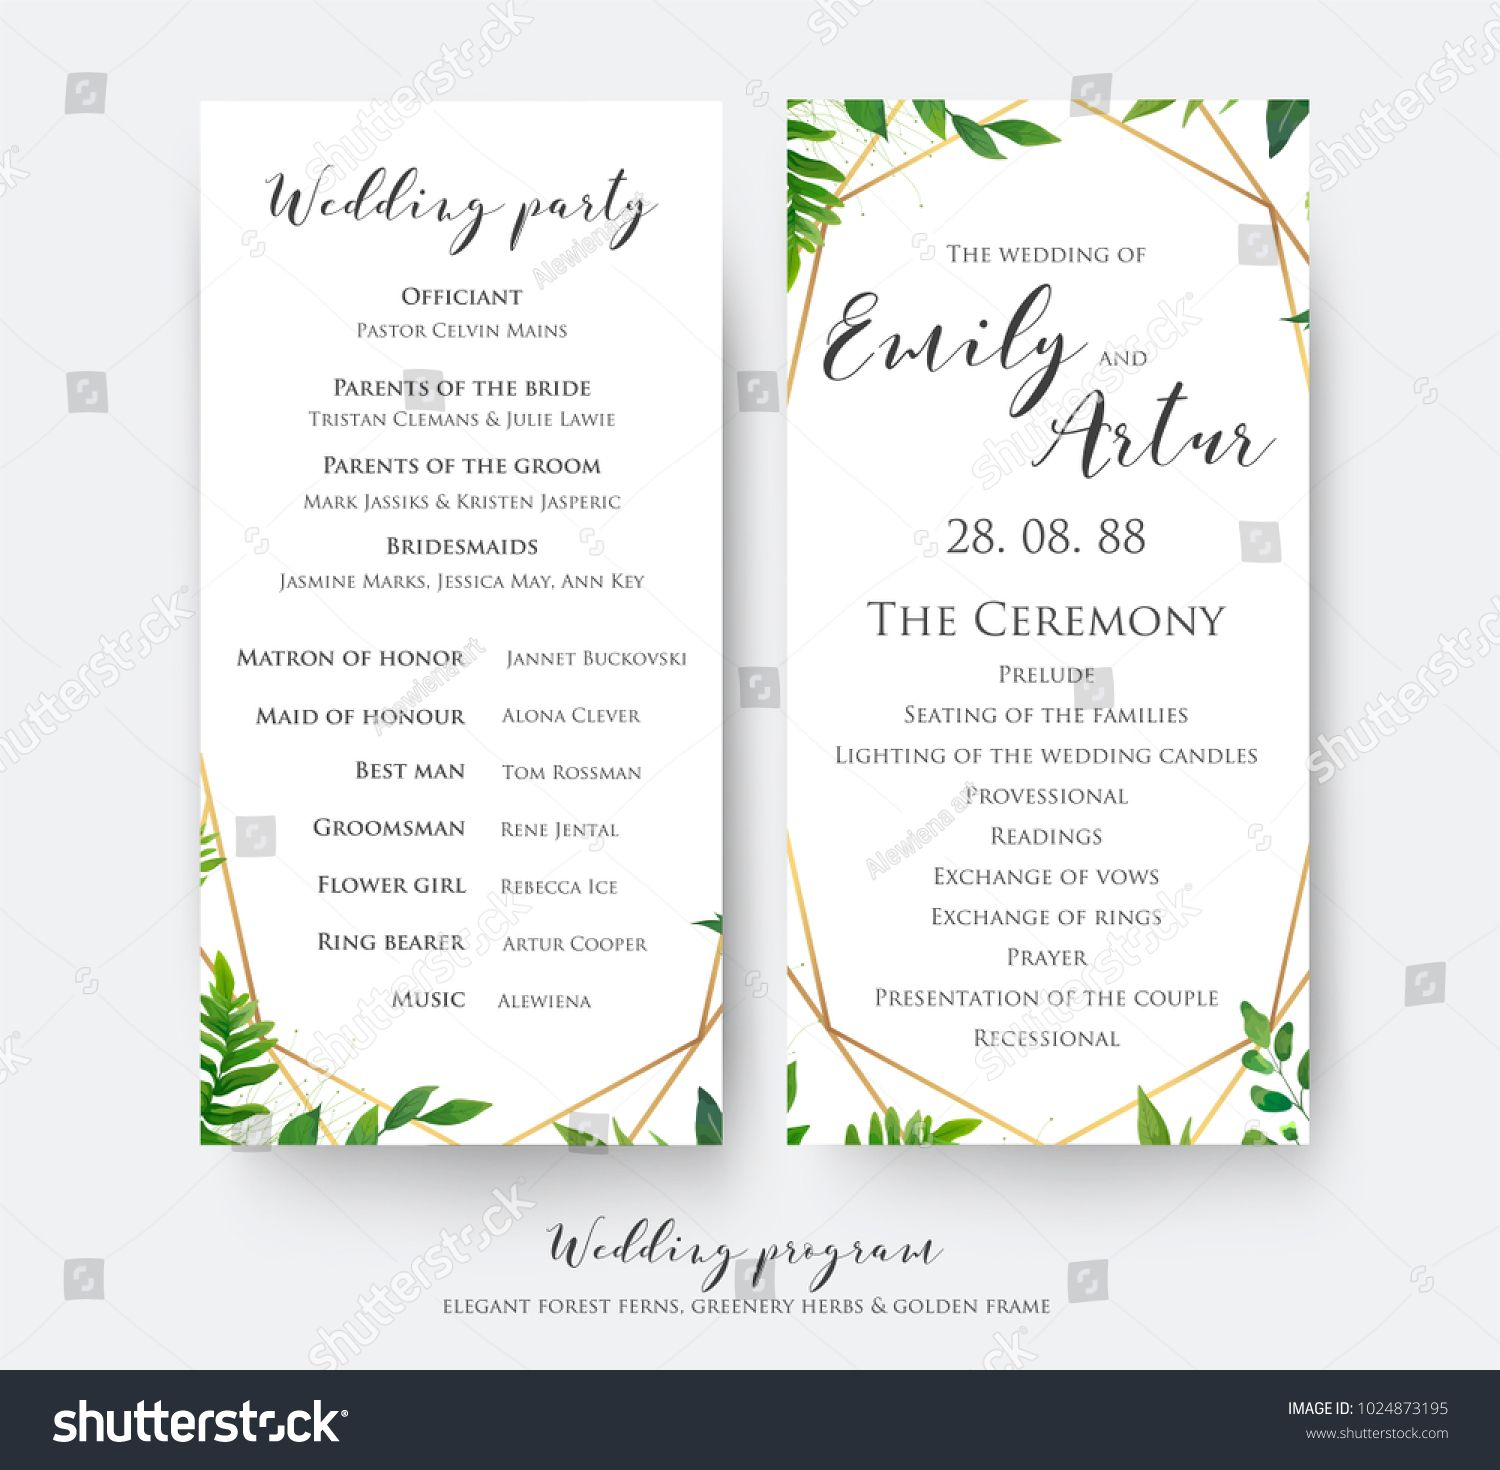 Wedding program card for ceremony and party with modern vector wedding program card for ceremony and party with modern vector floral botanical design with stopboris Images